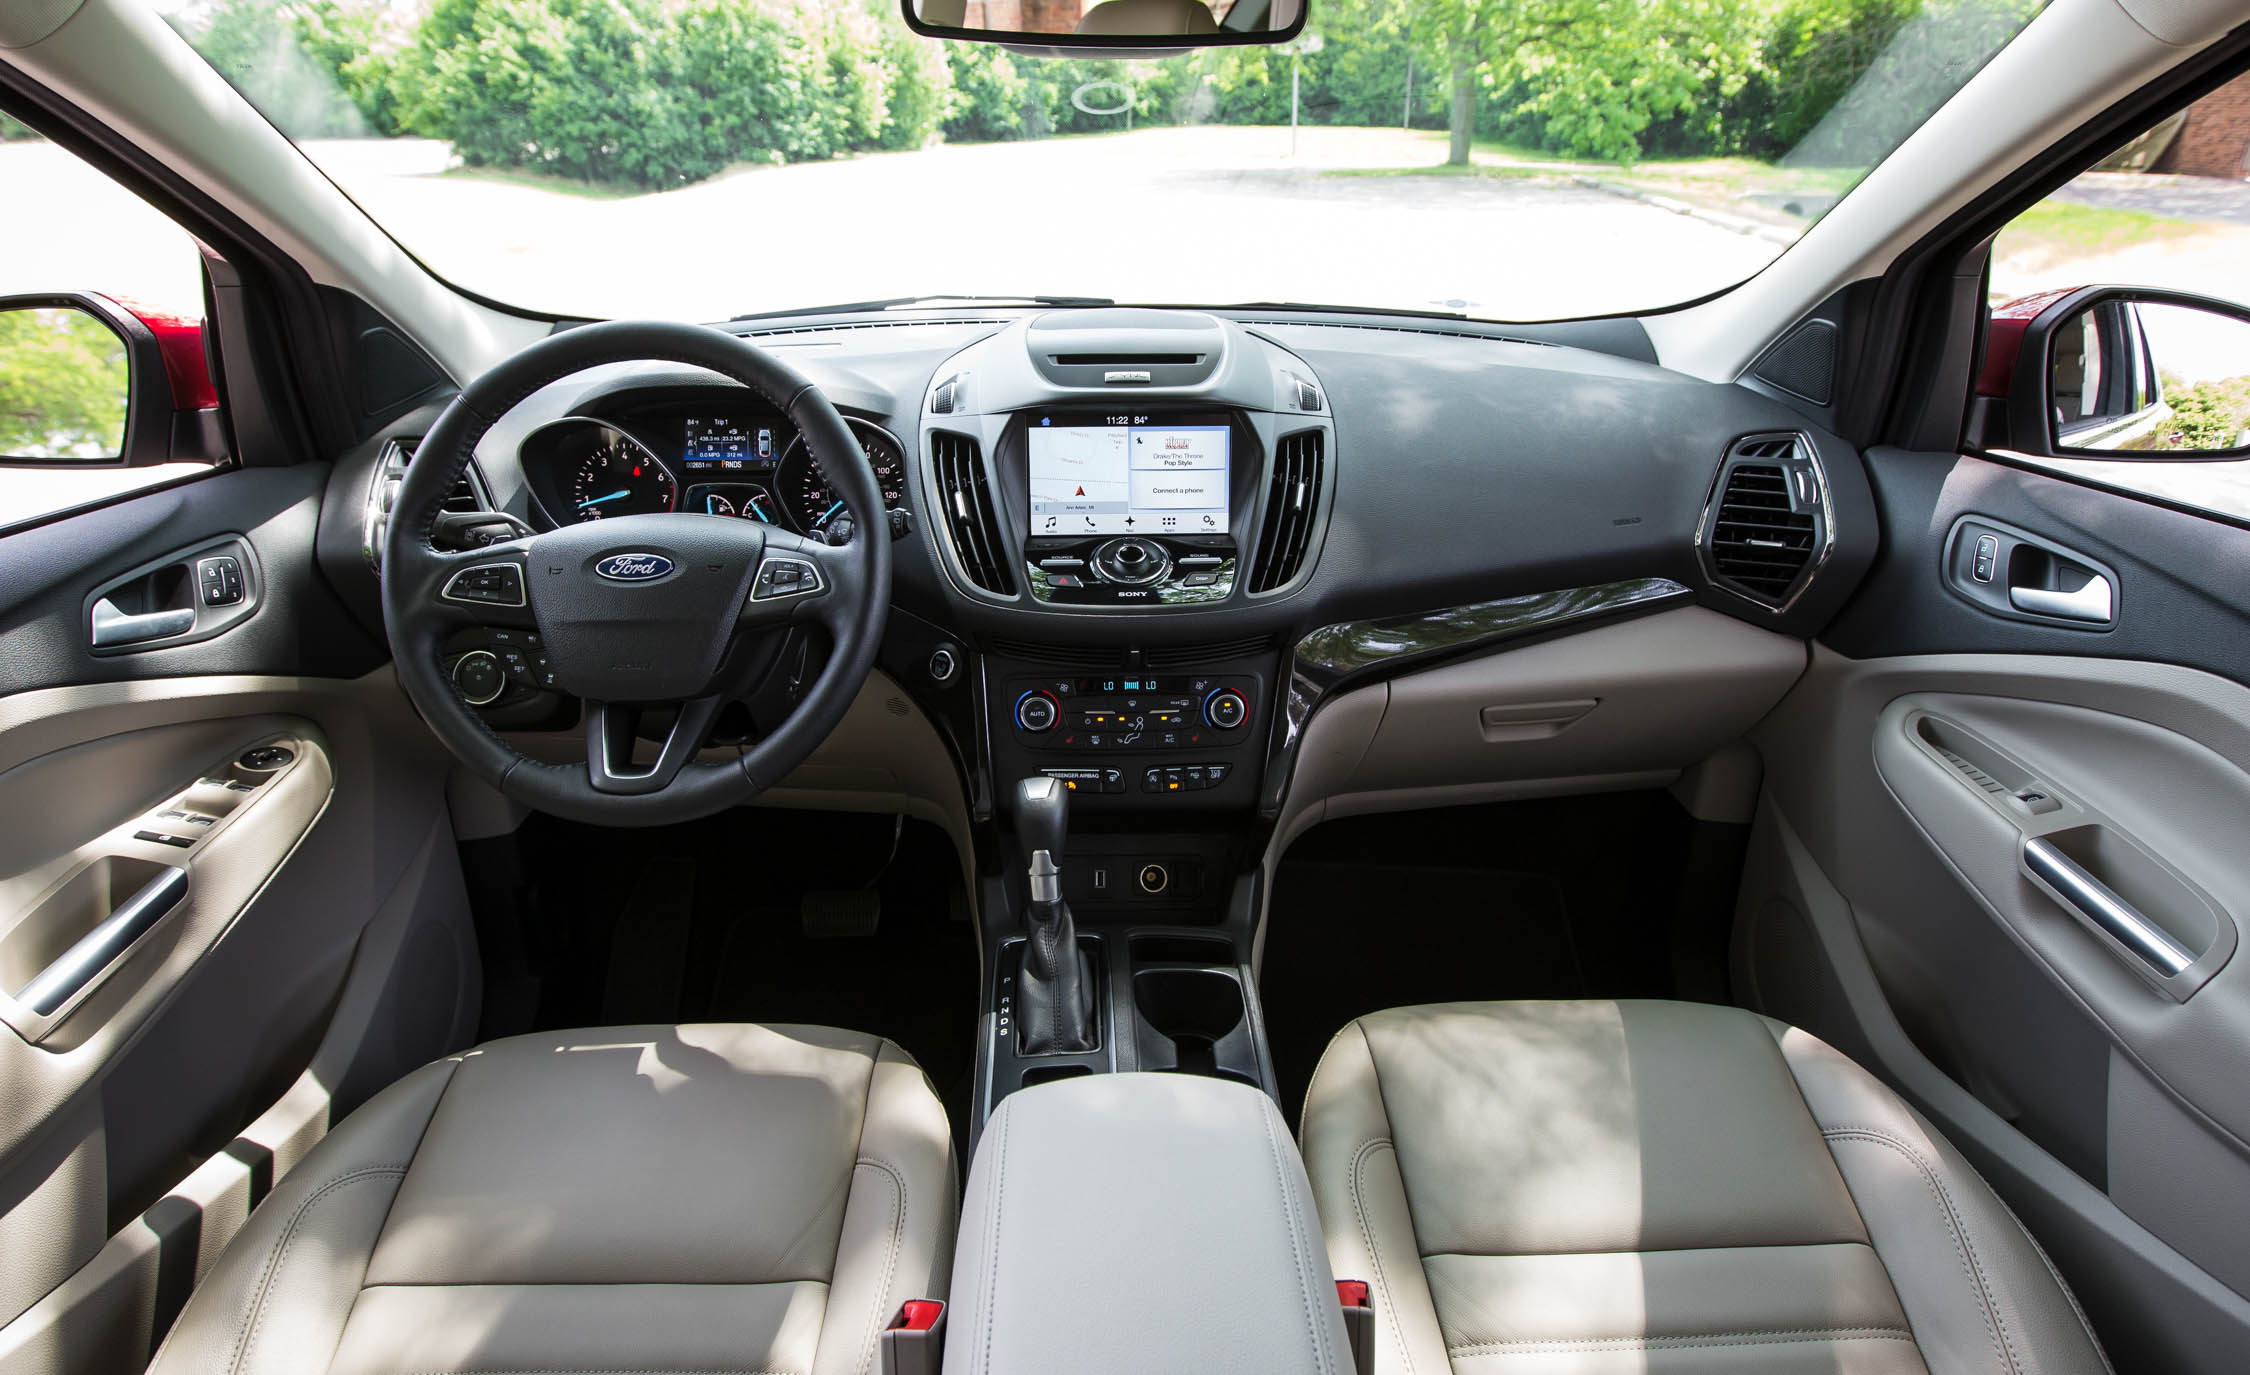 2017 Ford Escape Titanium Interior (Photo 27 of 28)